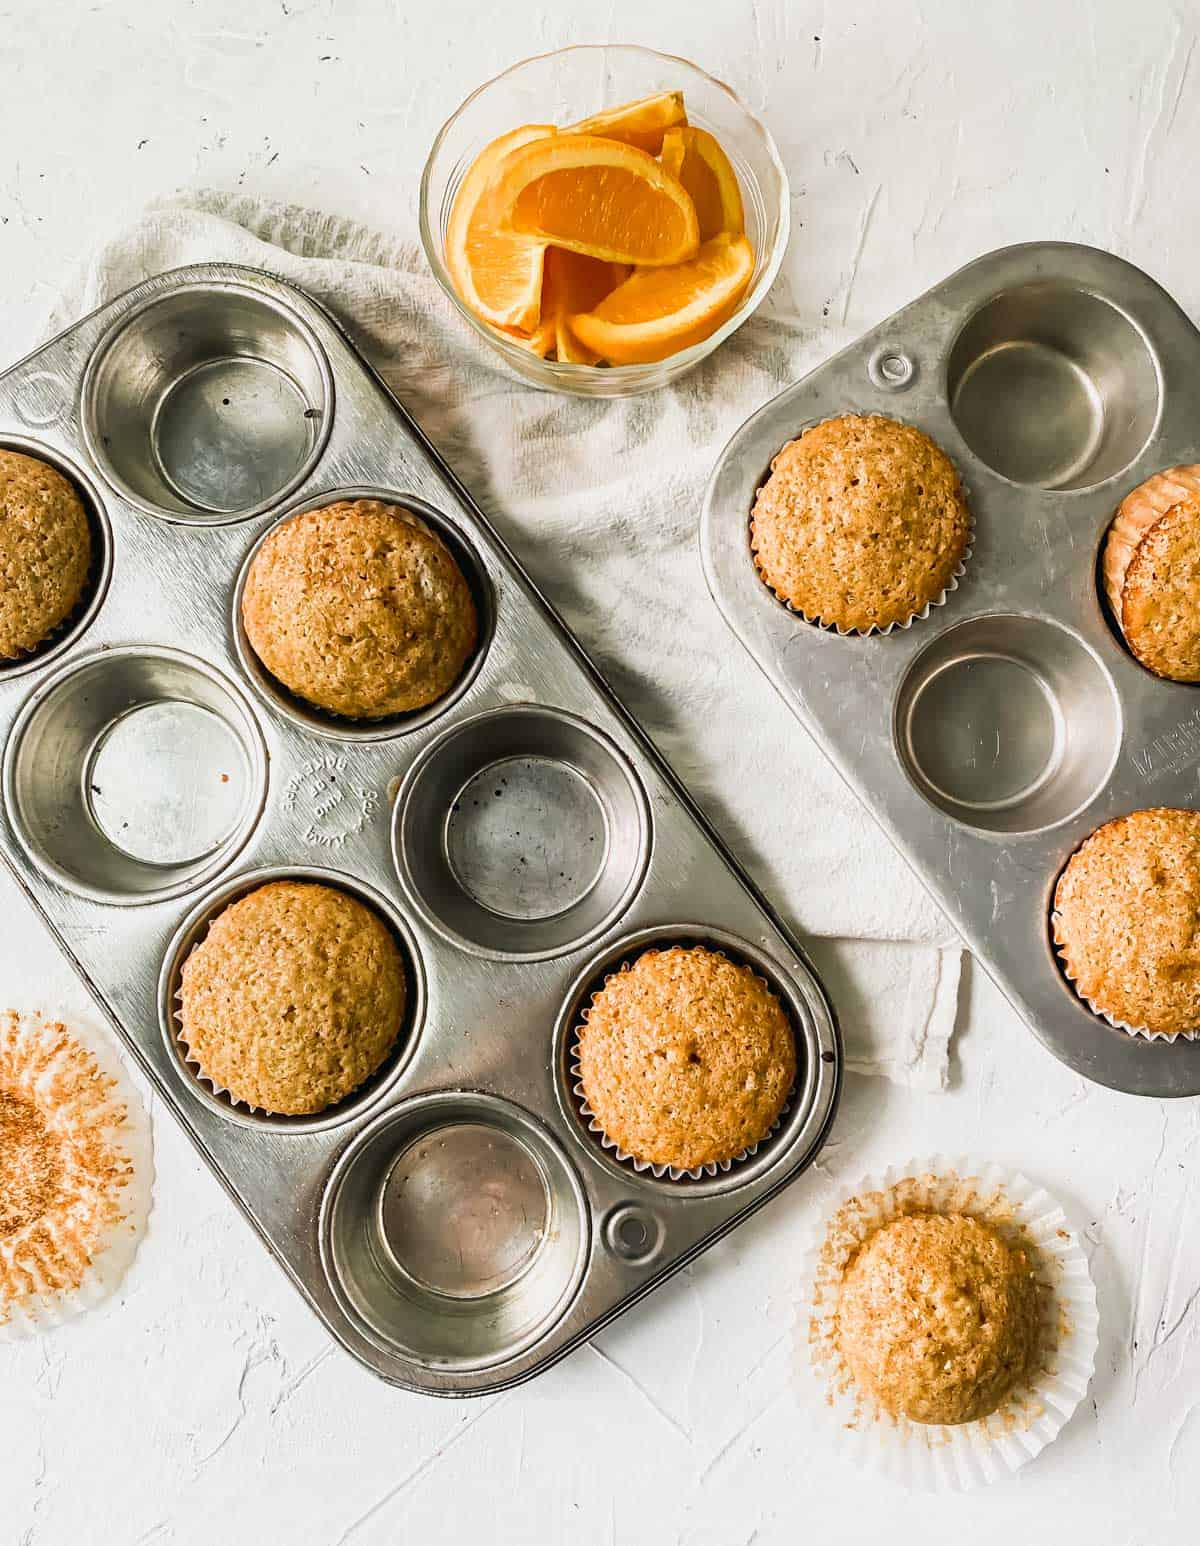 Spiced orange muffins in muffin pans with orange slices next to them.